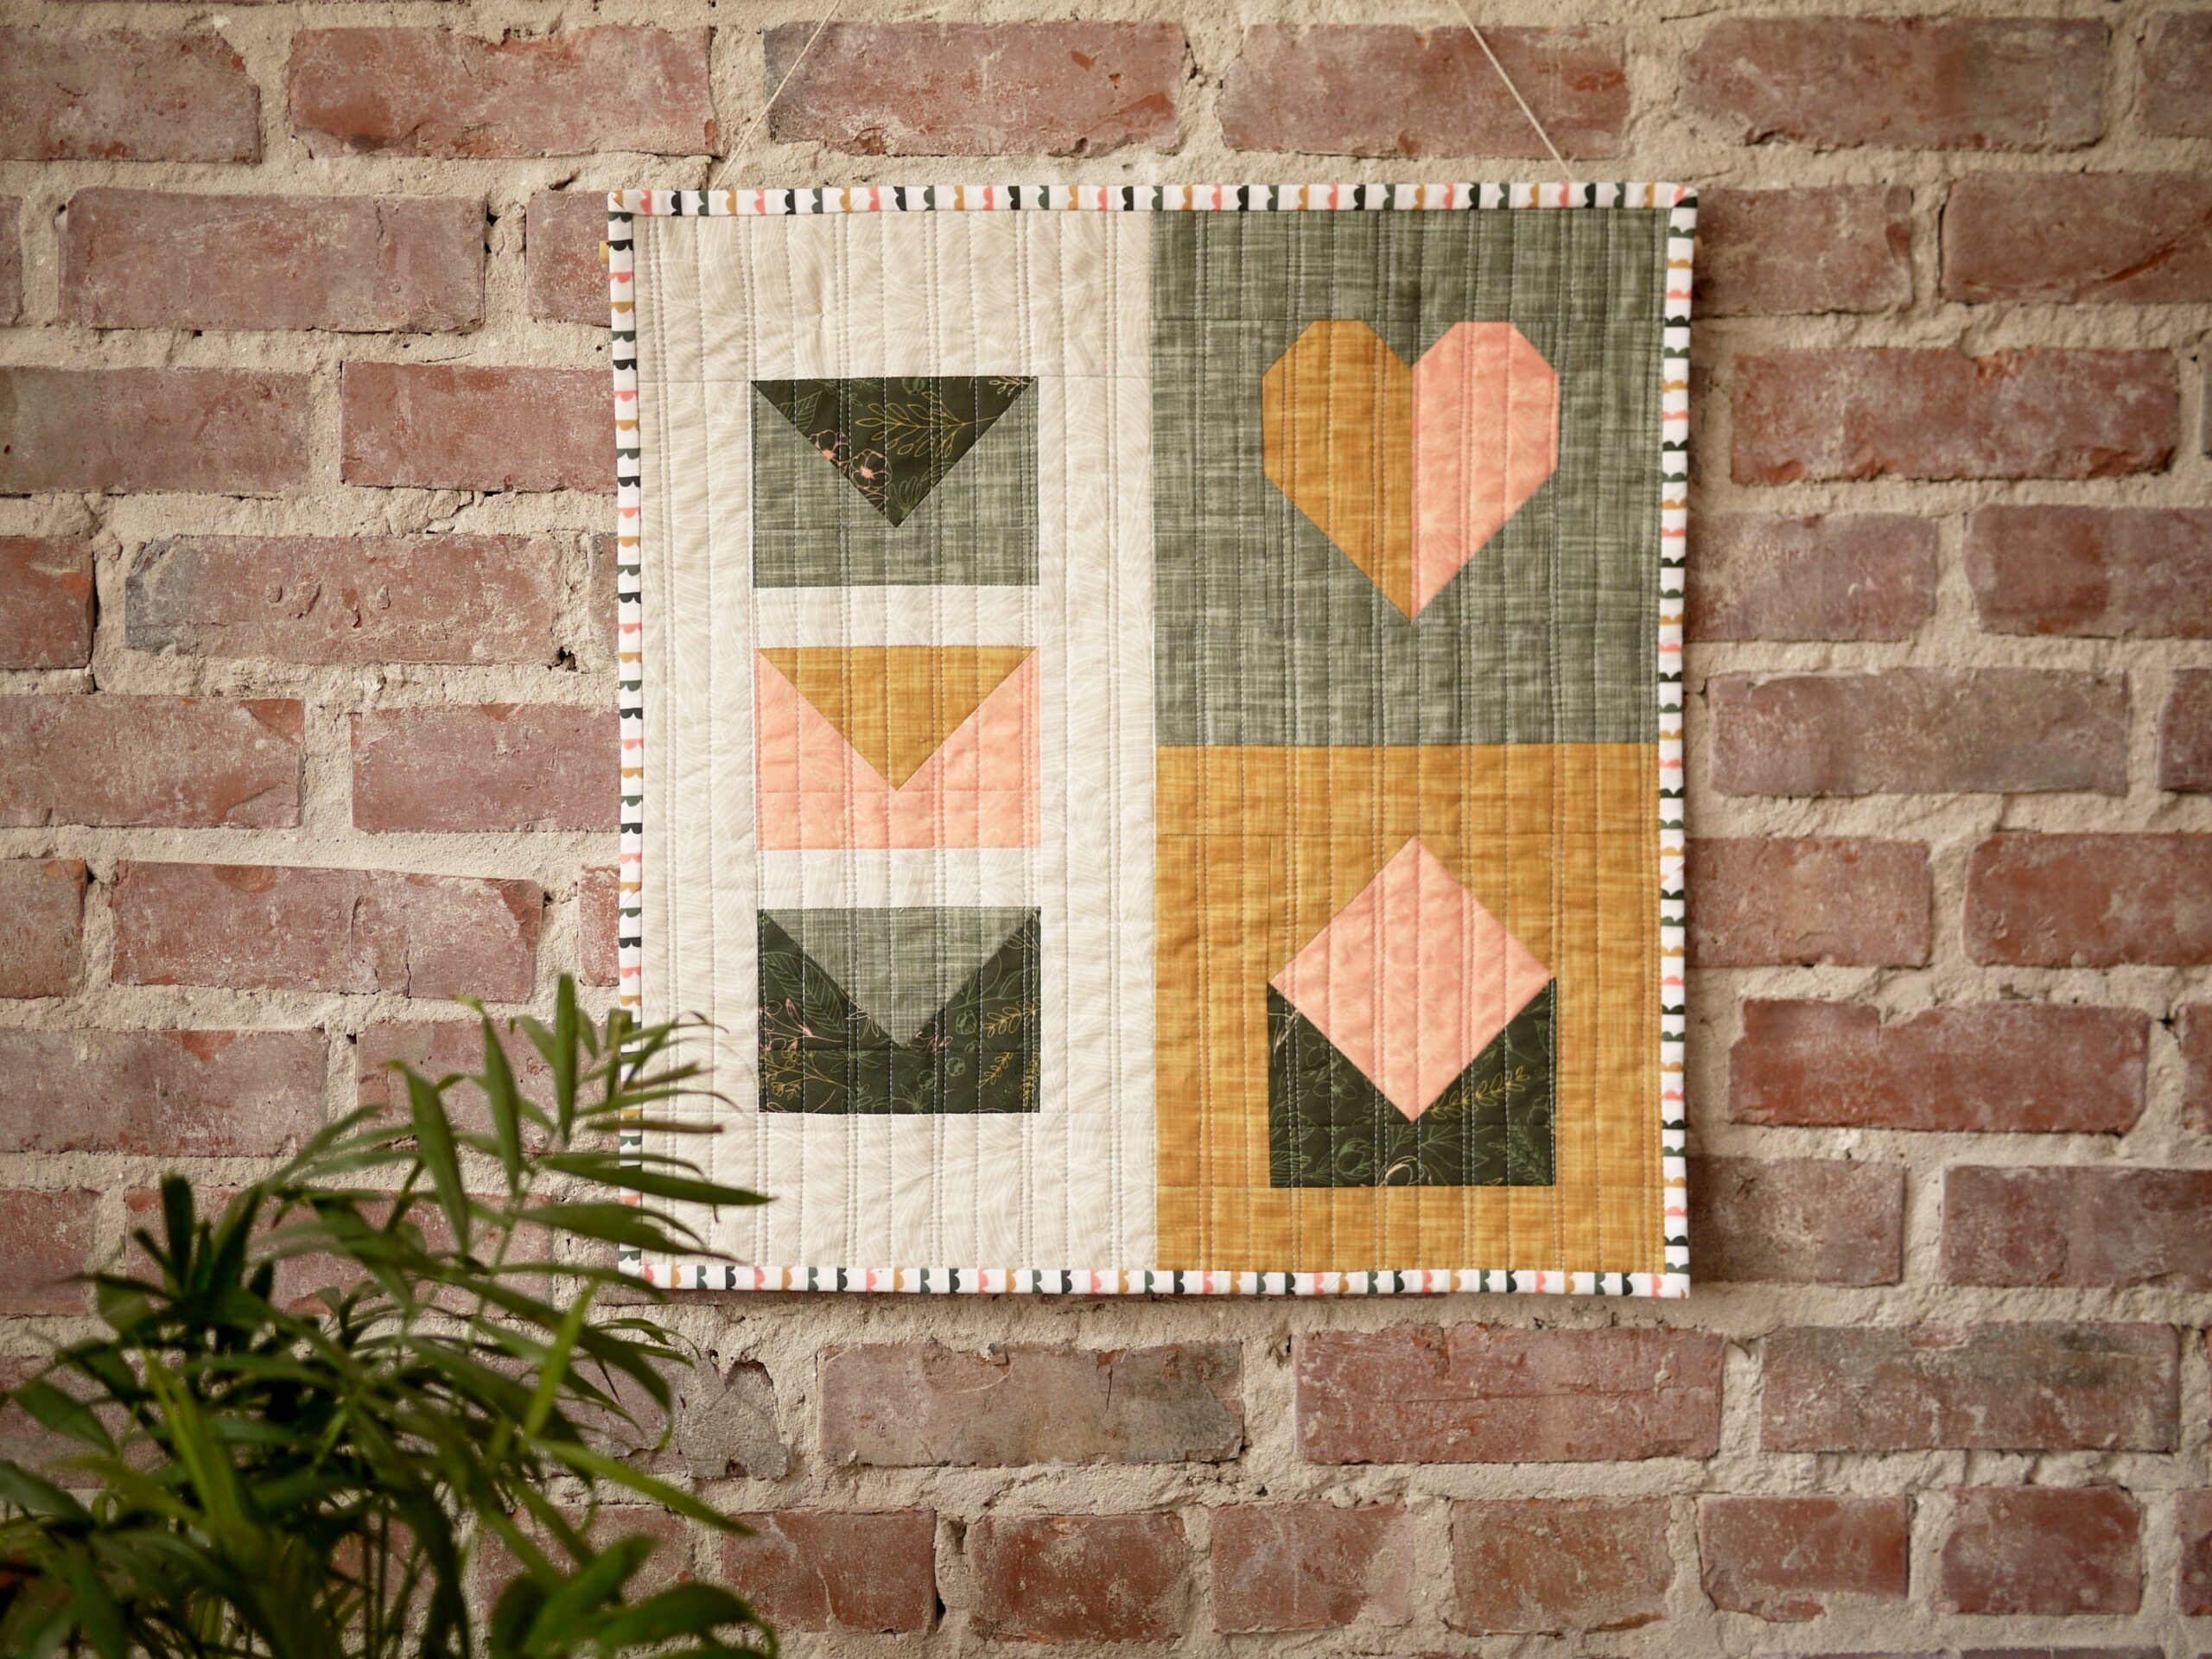 Finished quilt blocks hanging on a brick wall